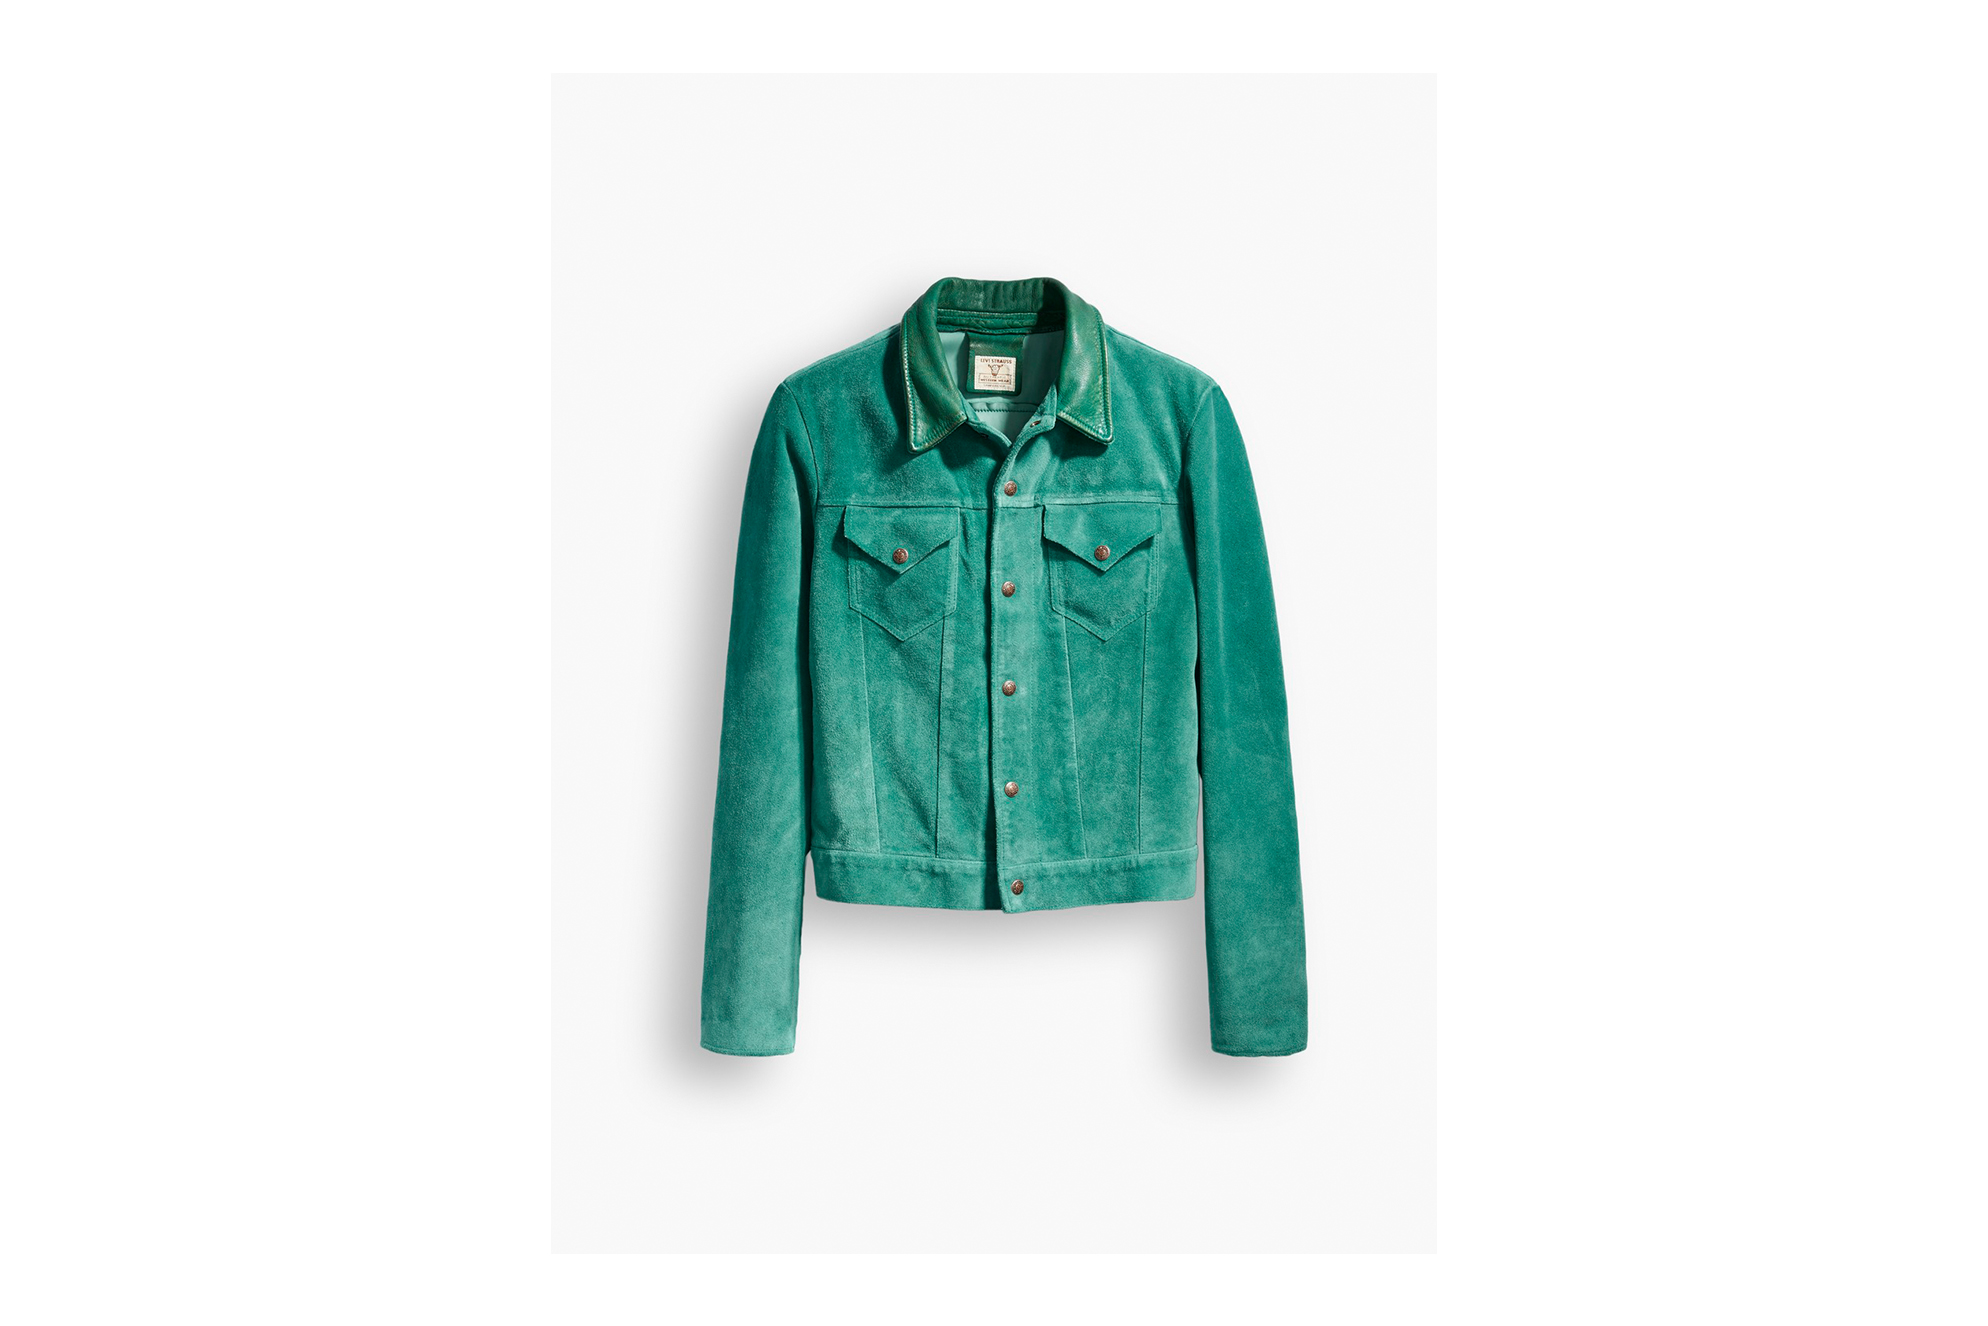 Levi's Vintage Clothing SS17-4